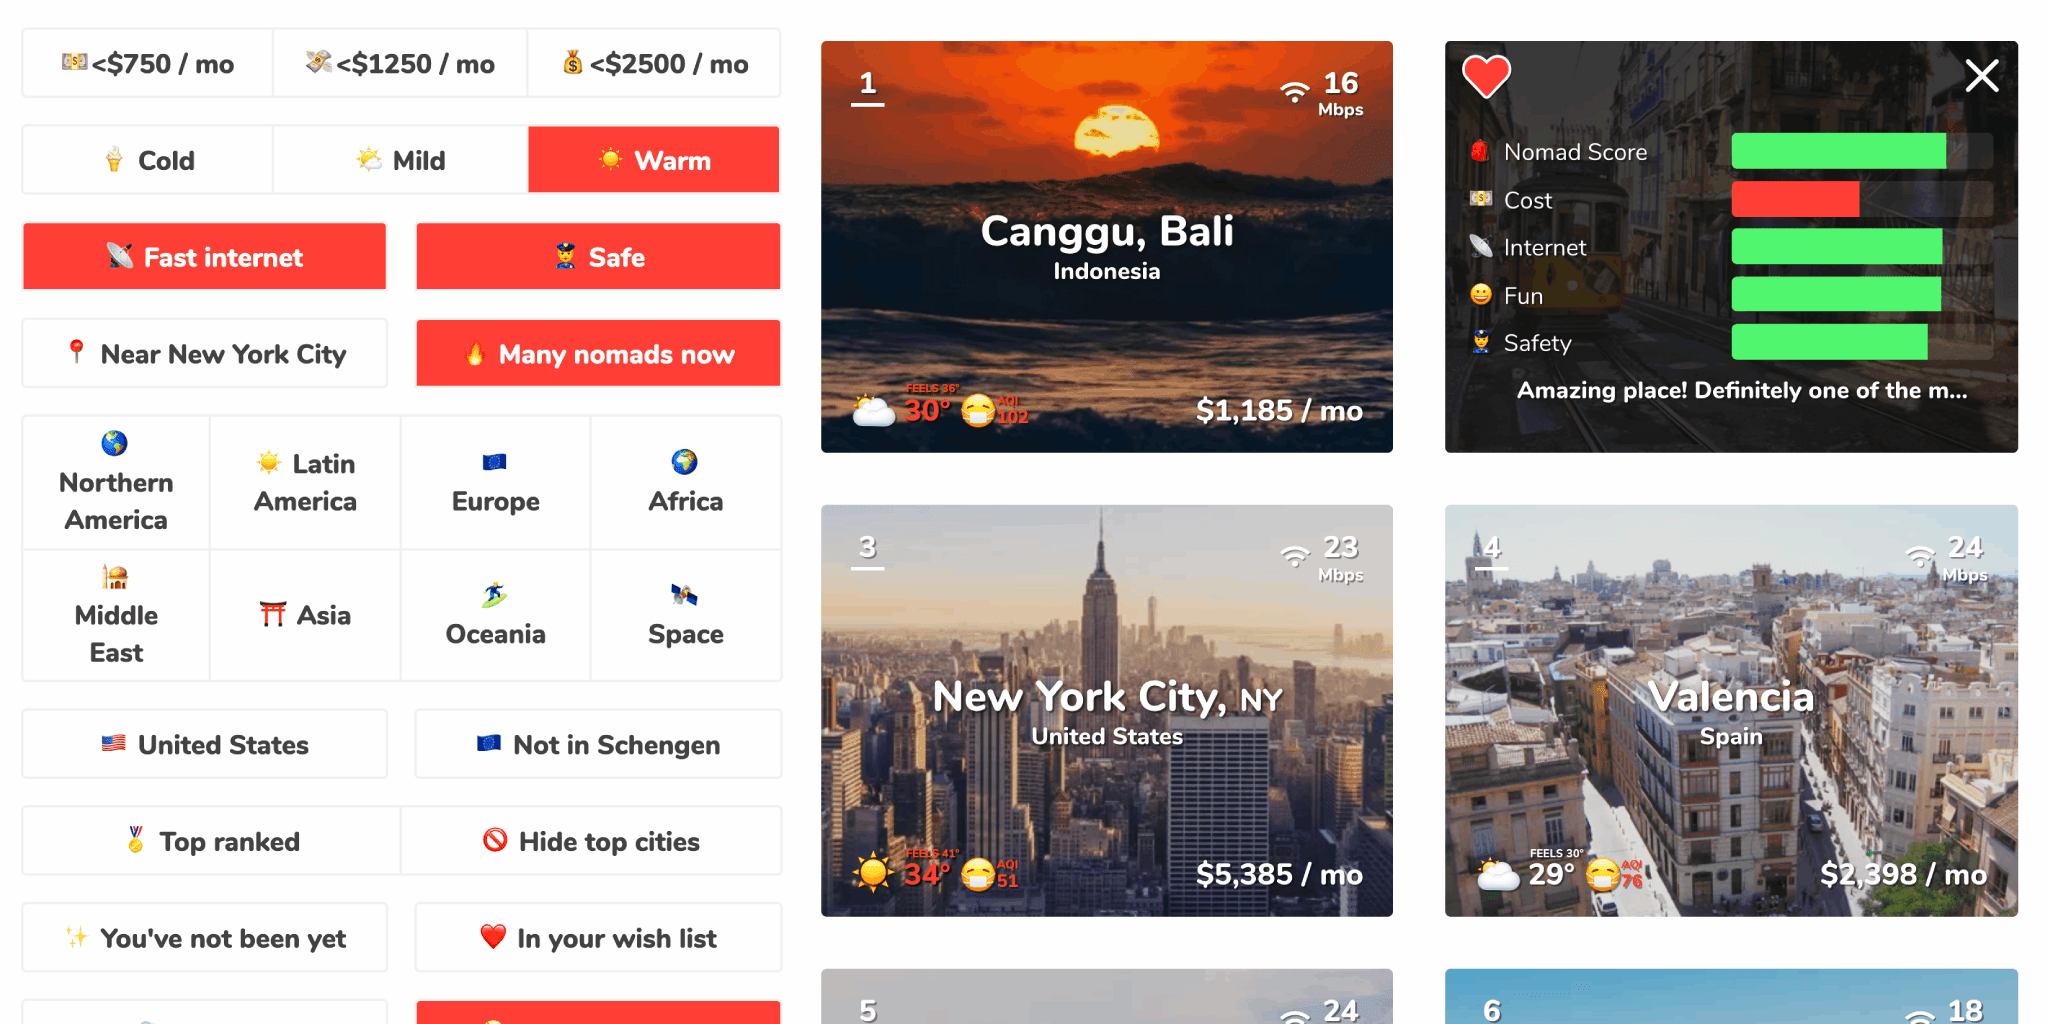 Nomad List - Best Cities to Live and Work Remotely